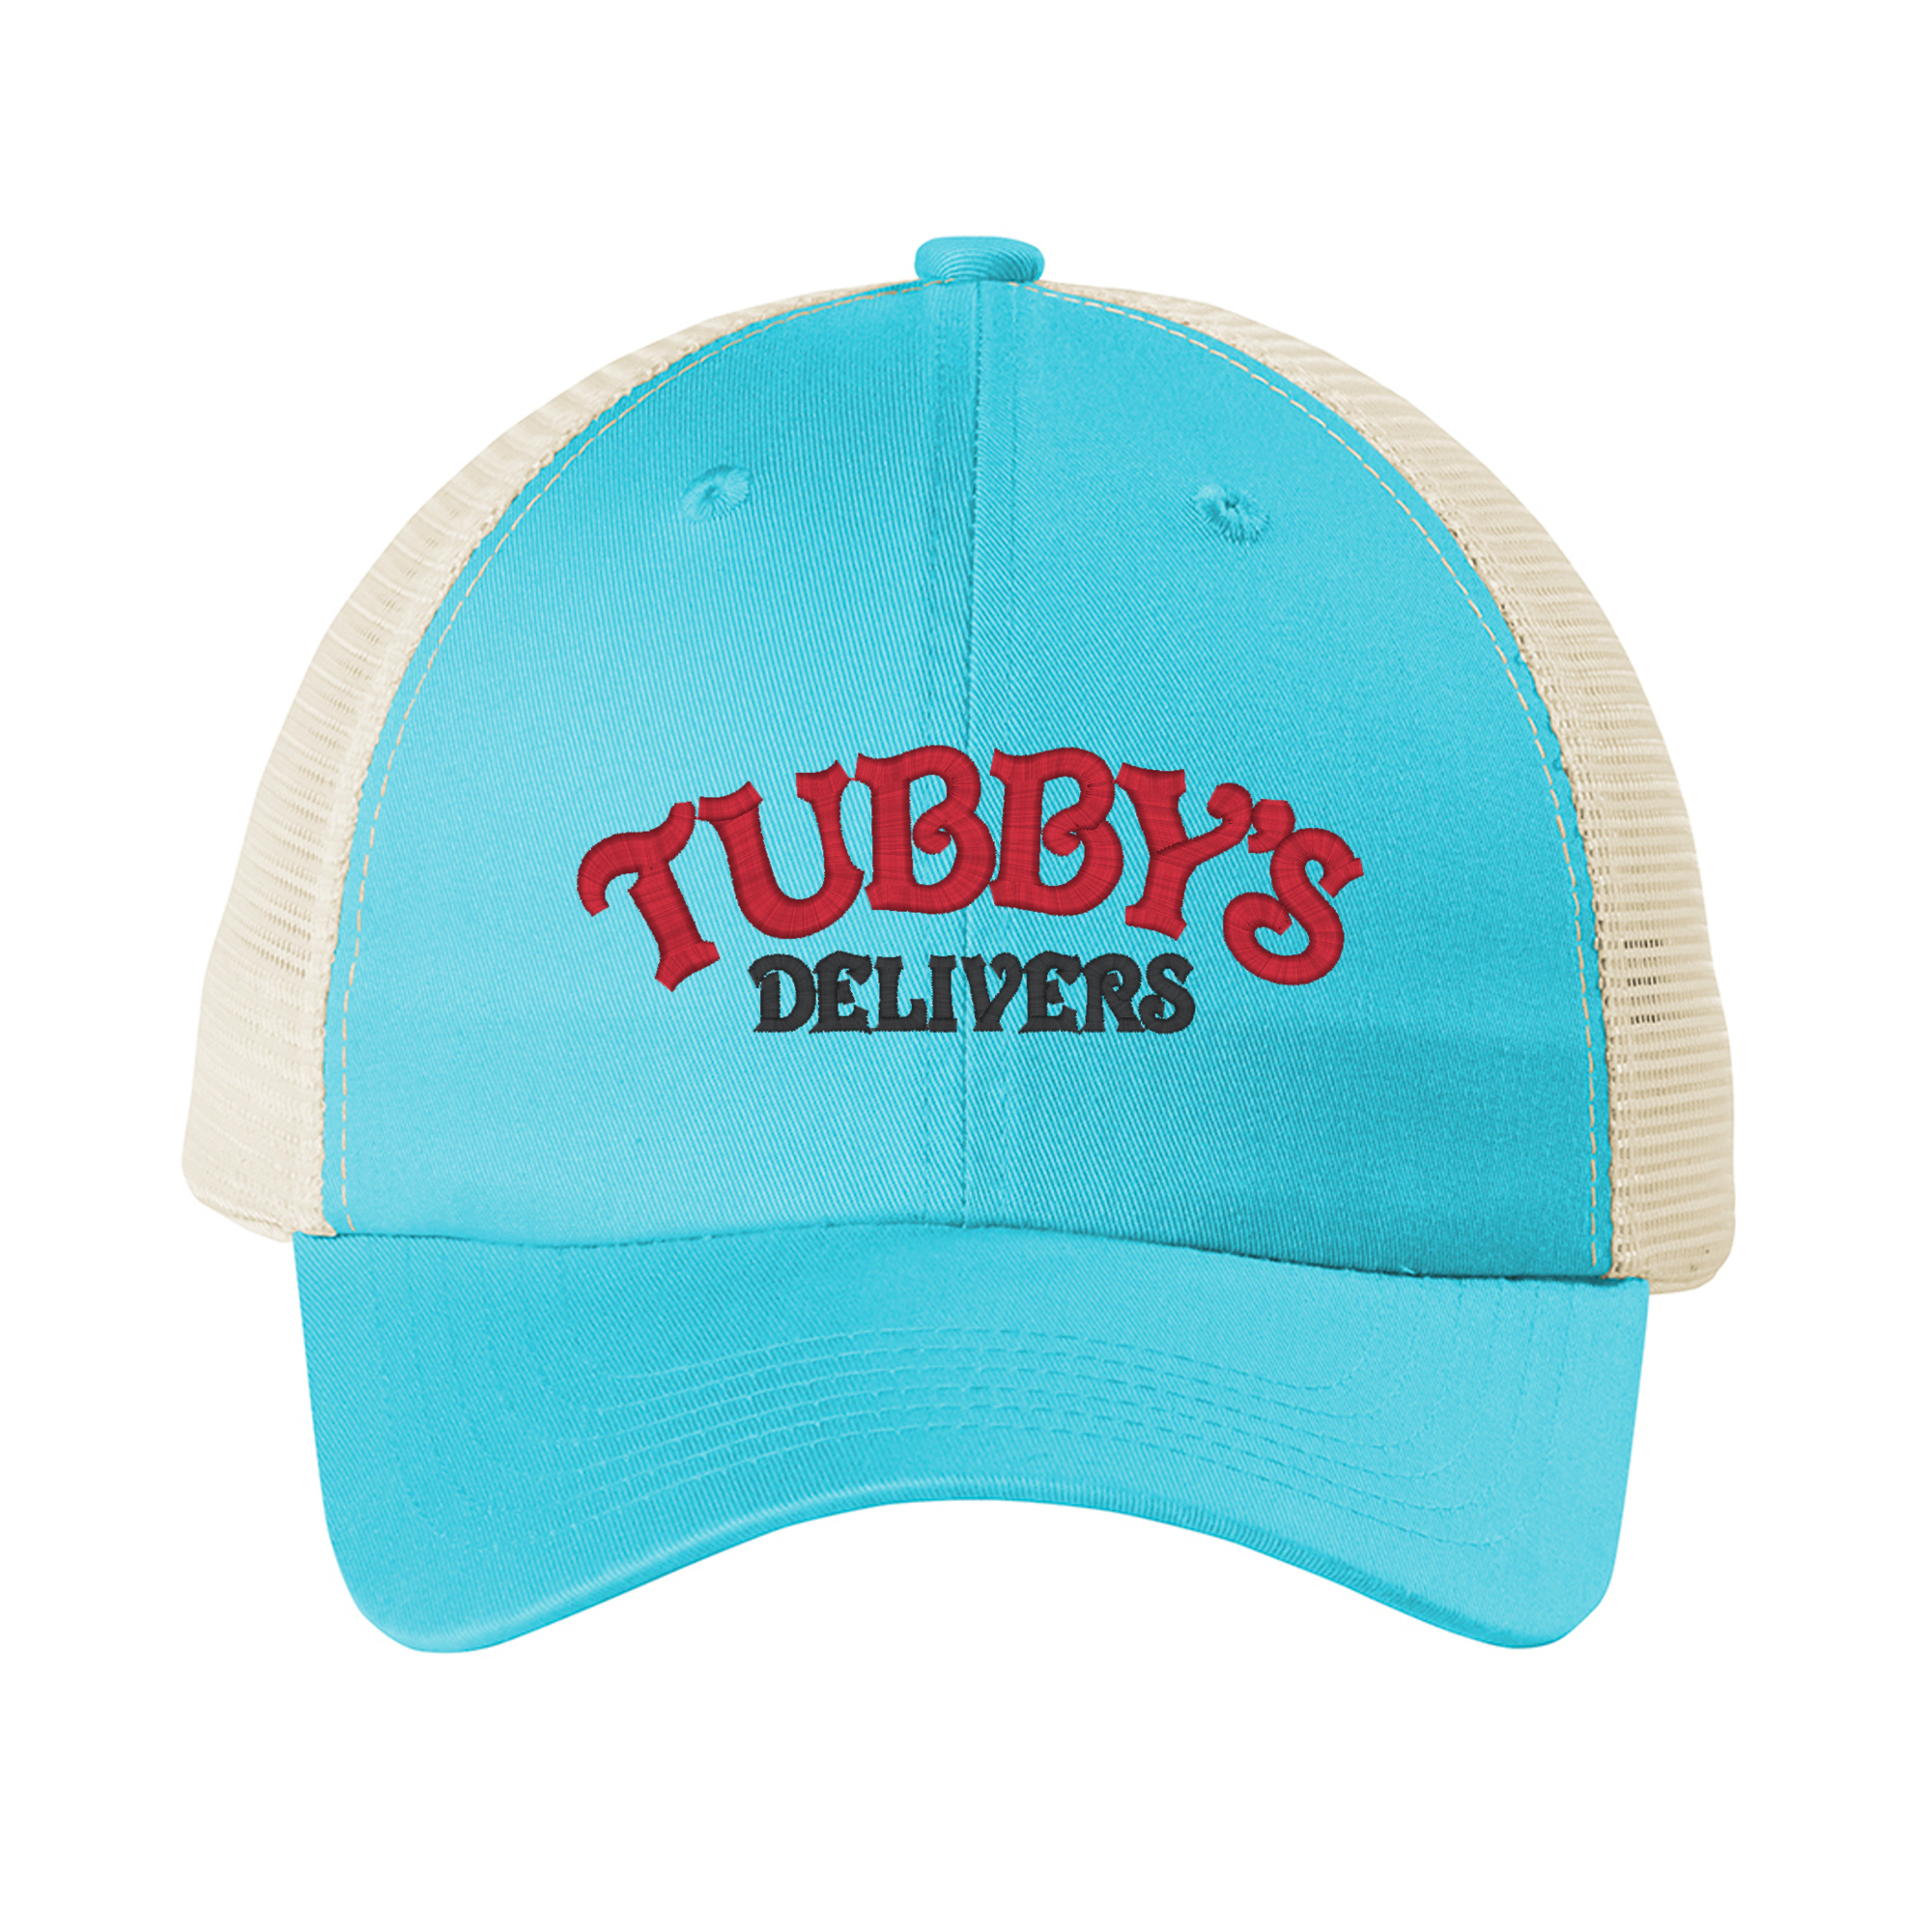 Tubby S Carryout Delivery Snapback Trucker Hat Ocean City Maryland Ocmd Throwback Hats At Findashirt Com